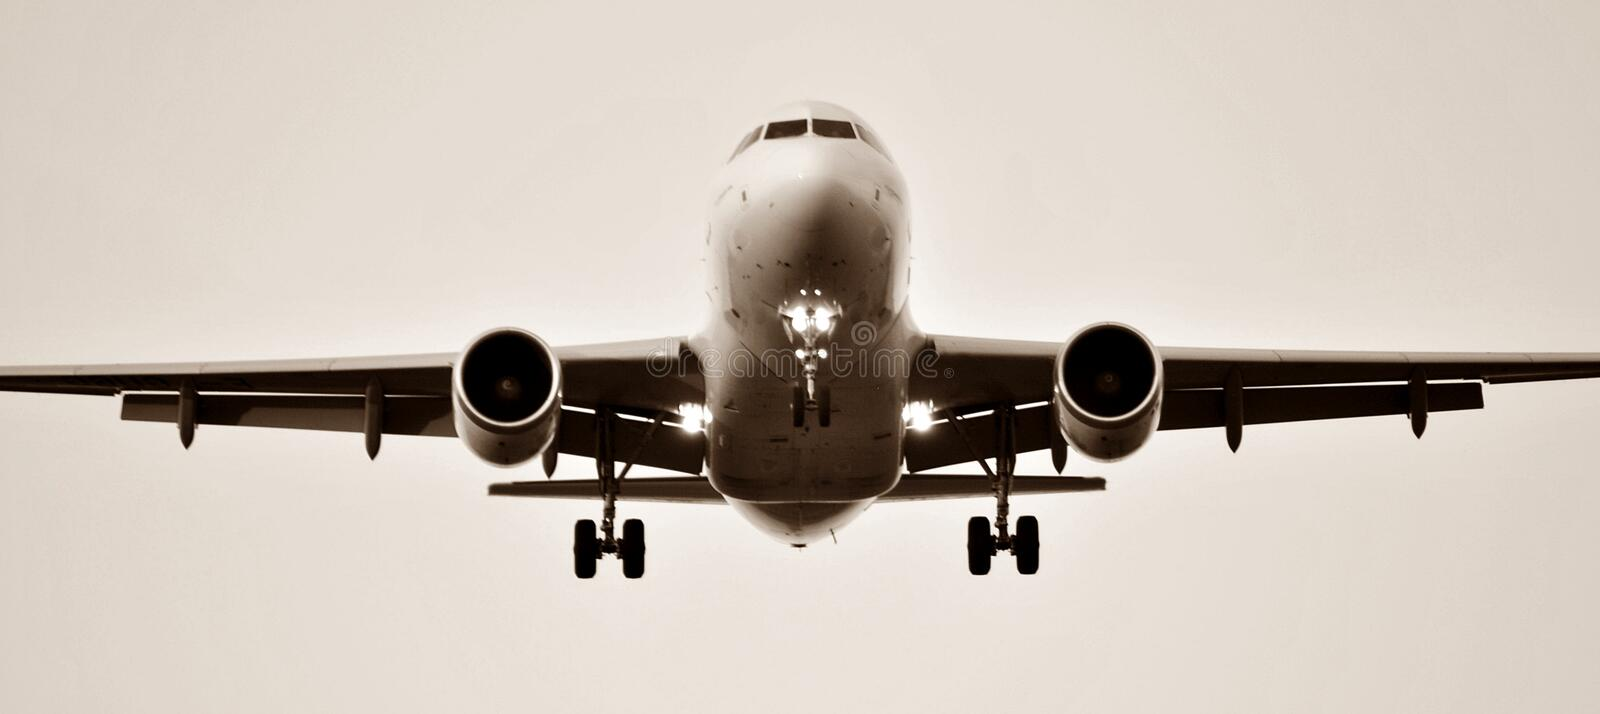 Airplane at the airport royalty free stock photography